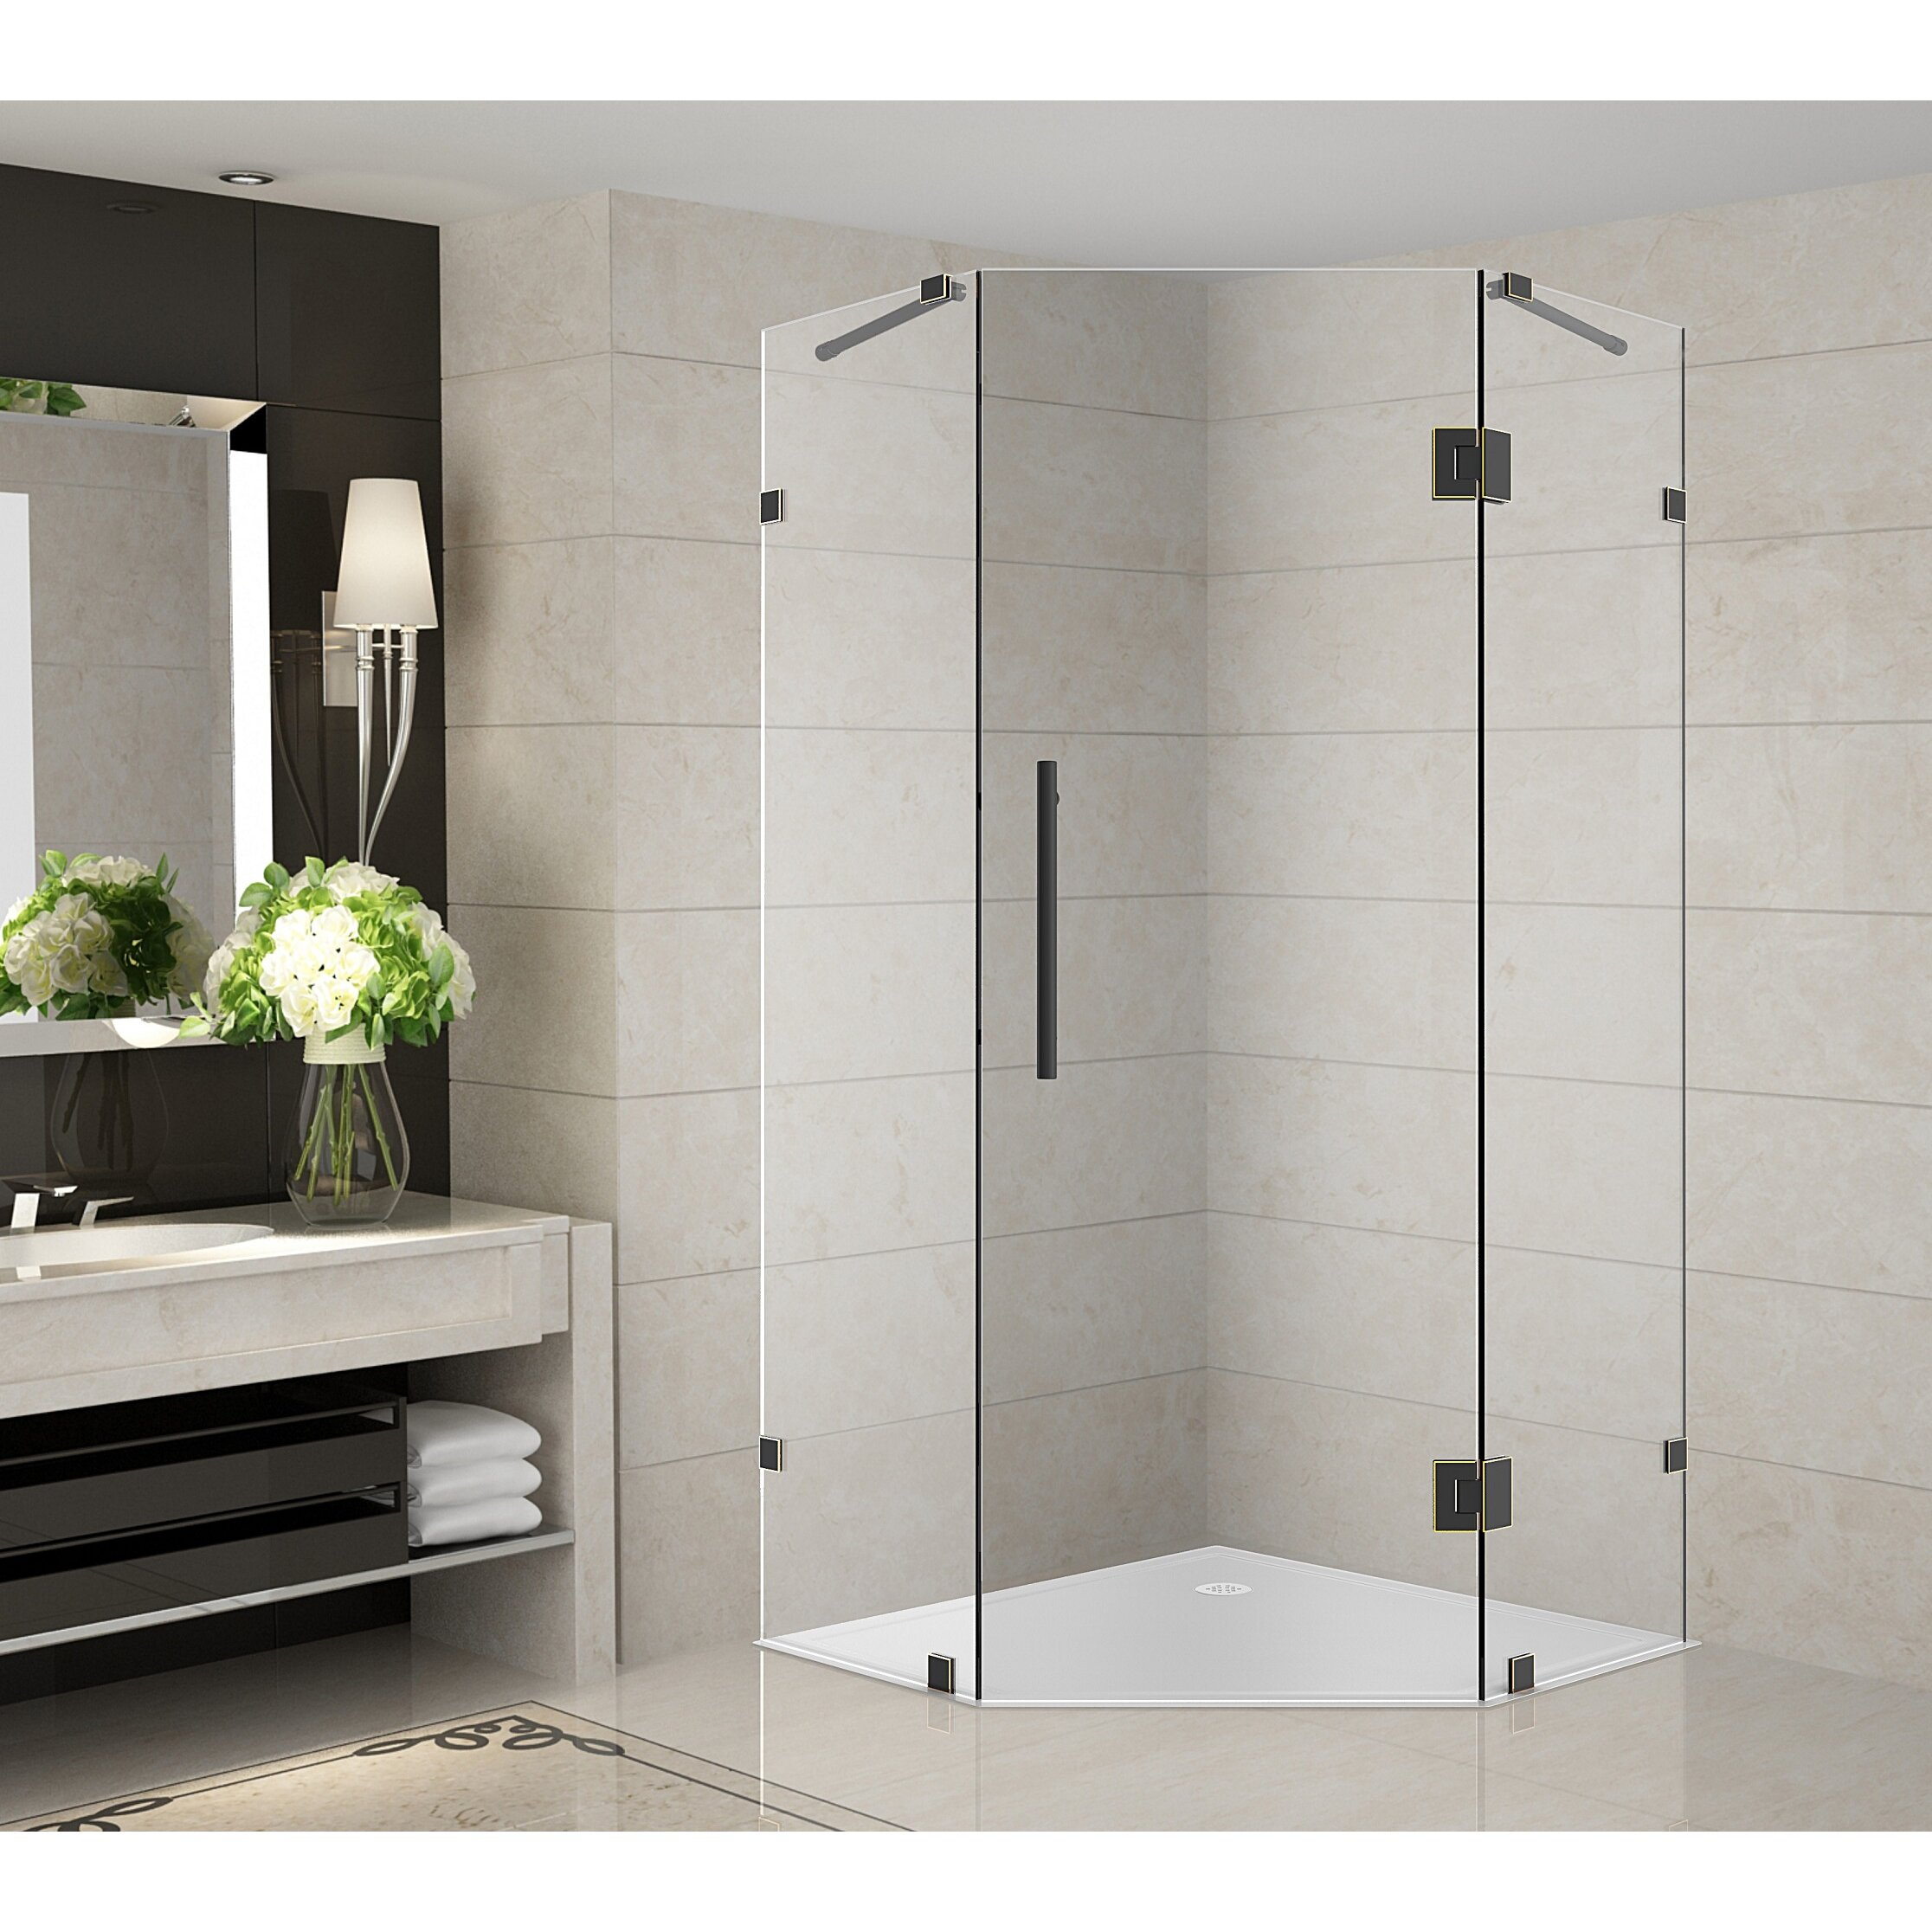 Aston neoscape 40 x 40 x 72 completely frameless neo angle hinged shower enclosure wayfair - Small shower enclosures ...